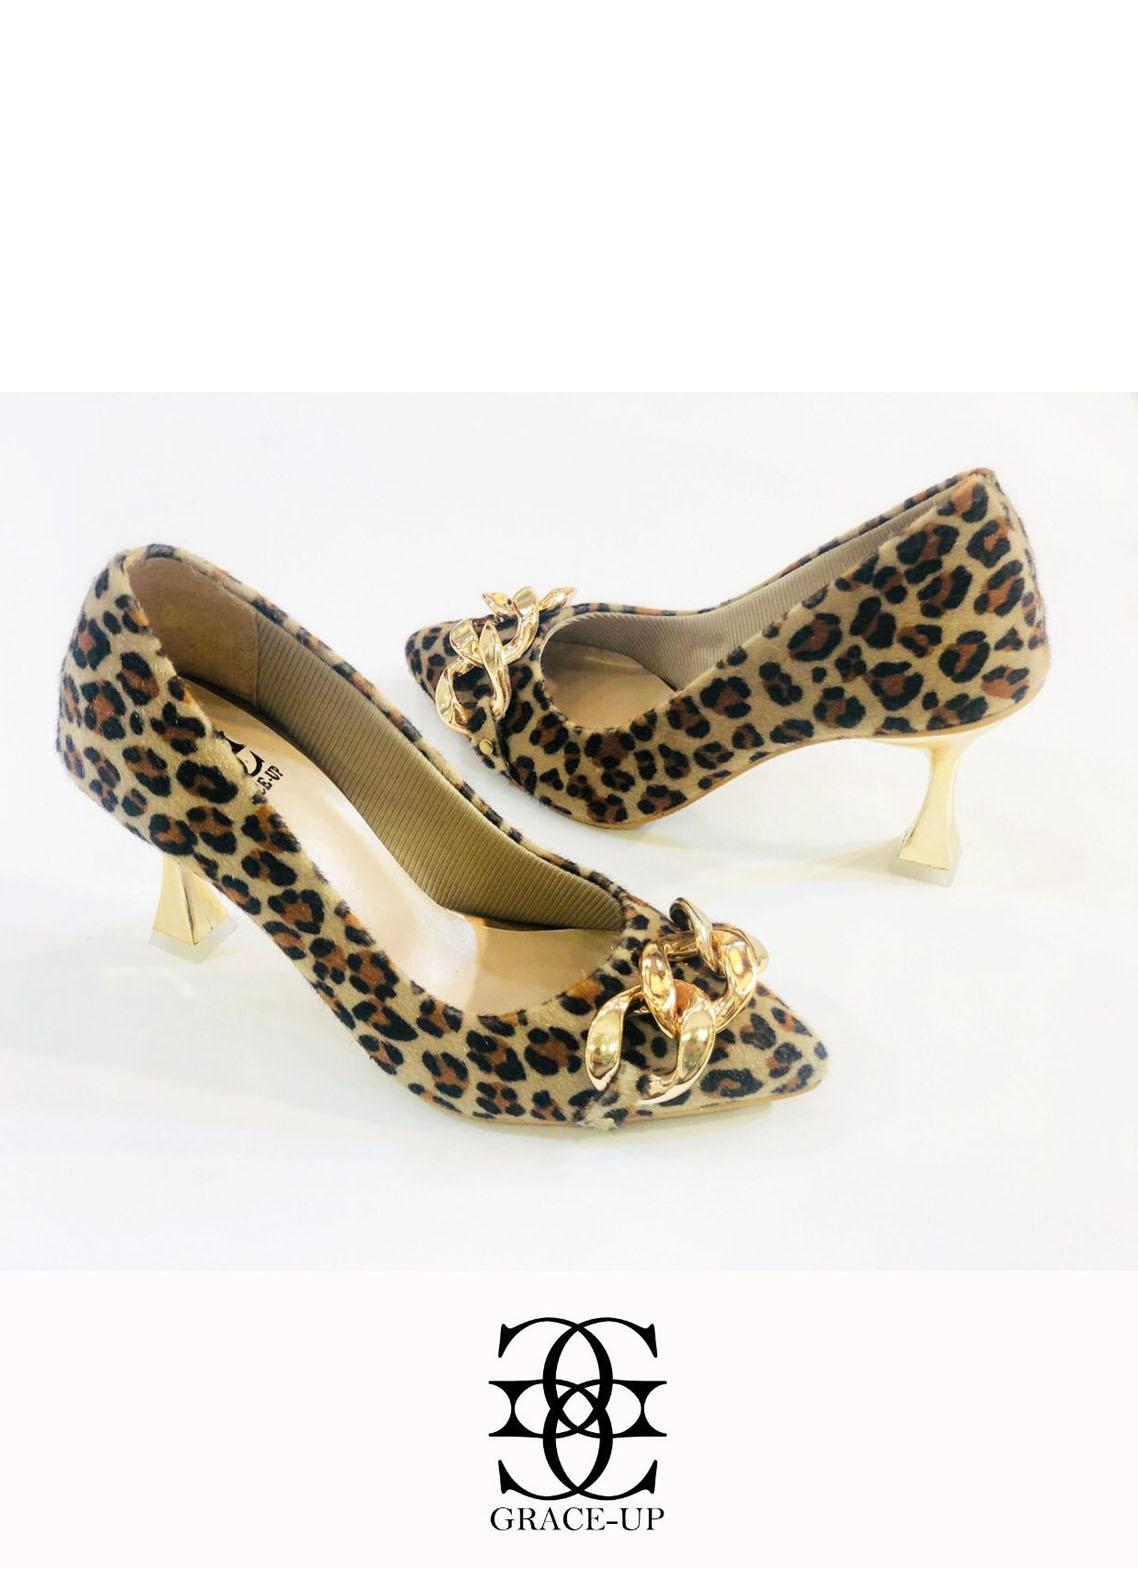 Grace Up Shoes Formal Style  Heels  O488 CHEETAH